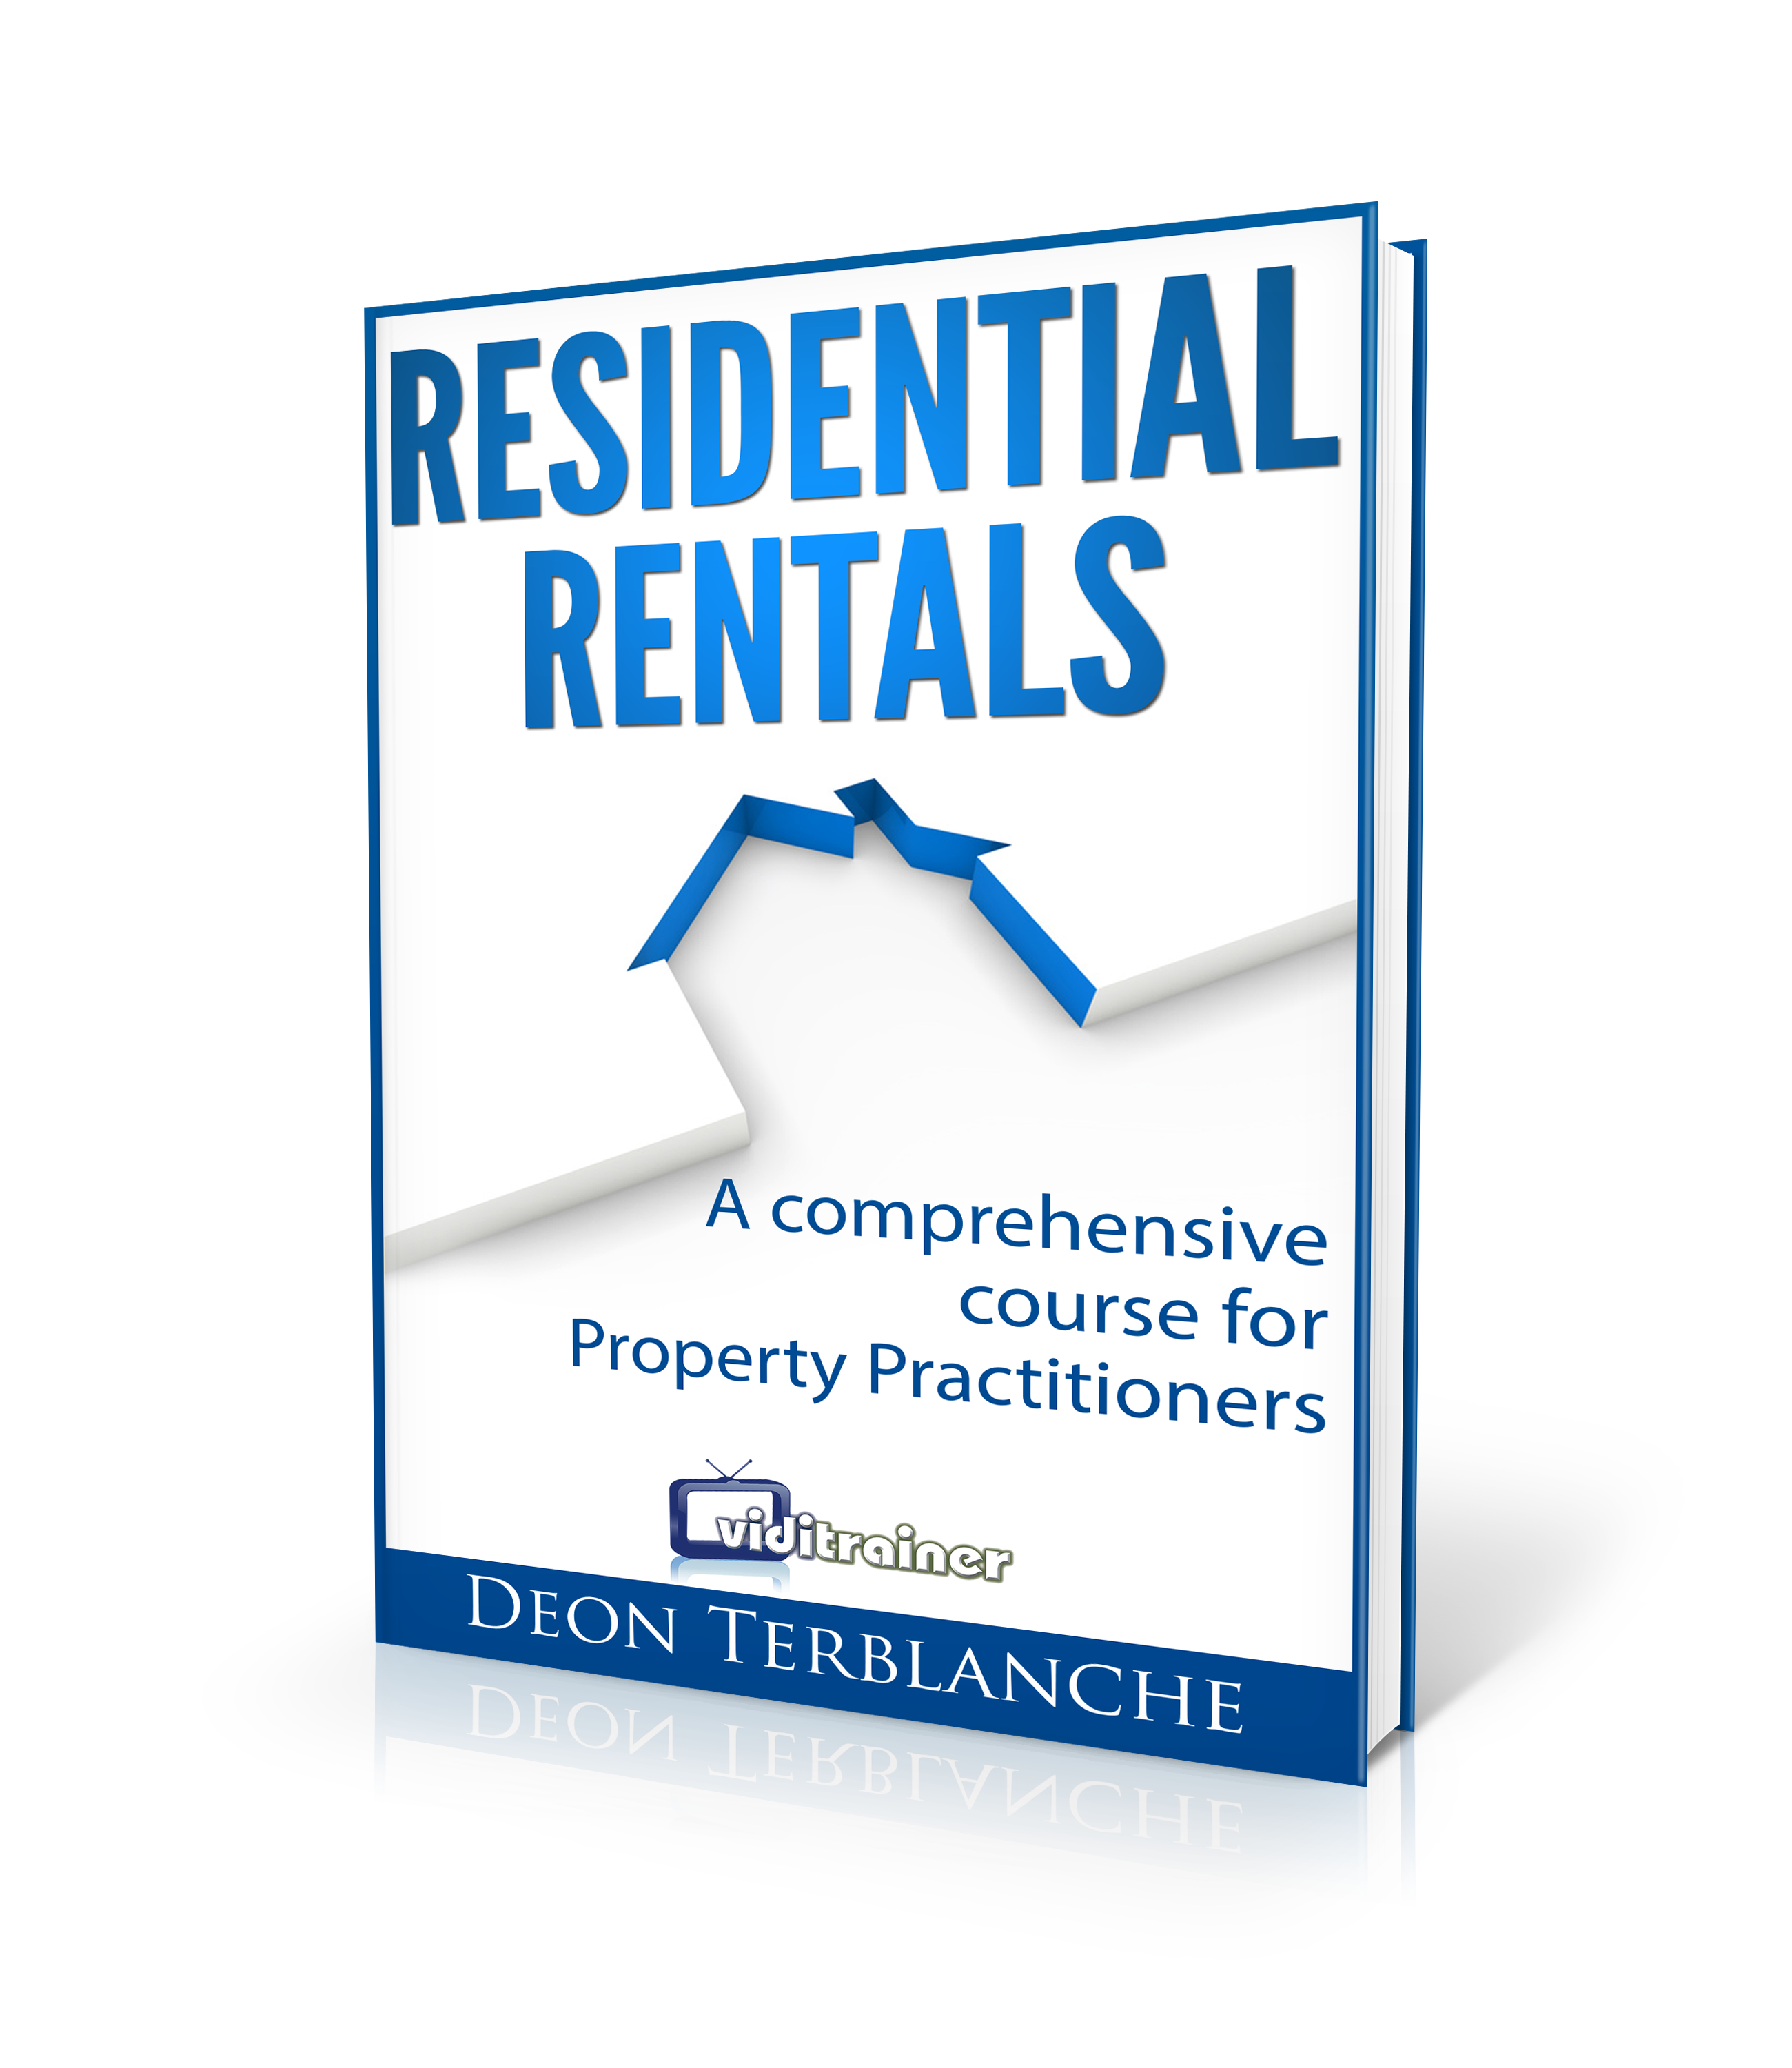 Cover image - Residential Rentals - A comprehensive, step-by-step book for South African estate agents about residential rentals